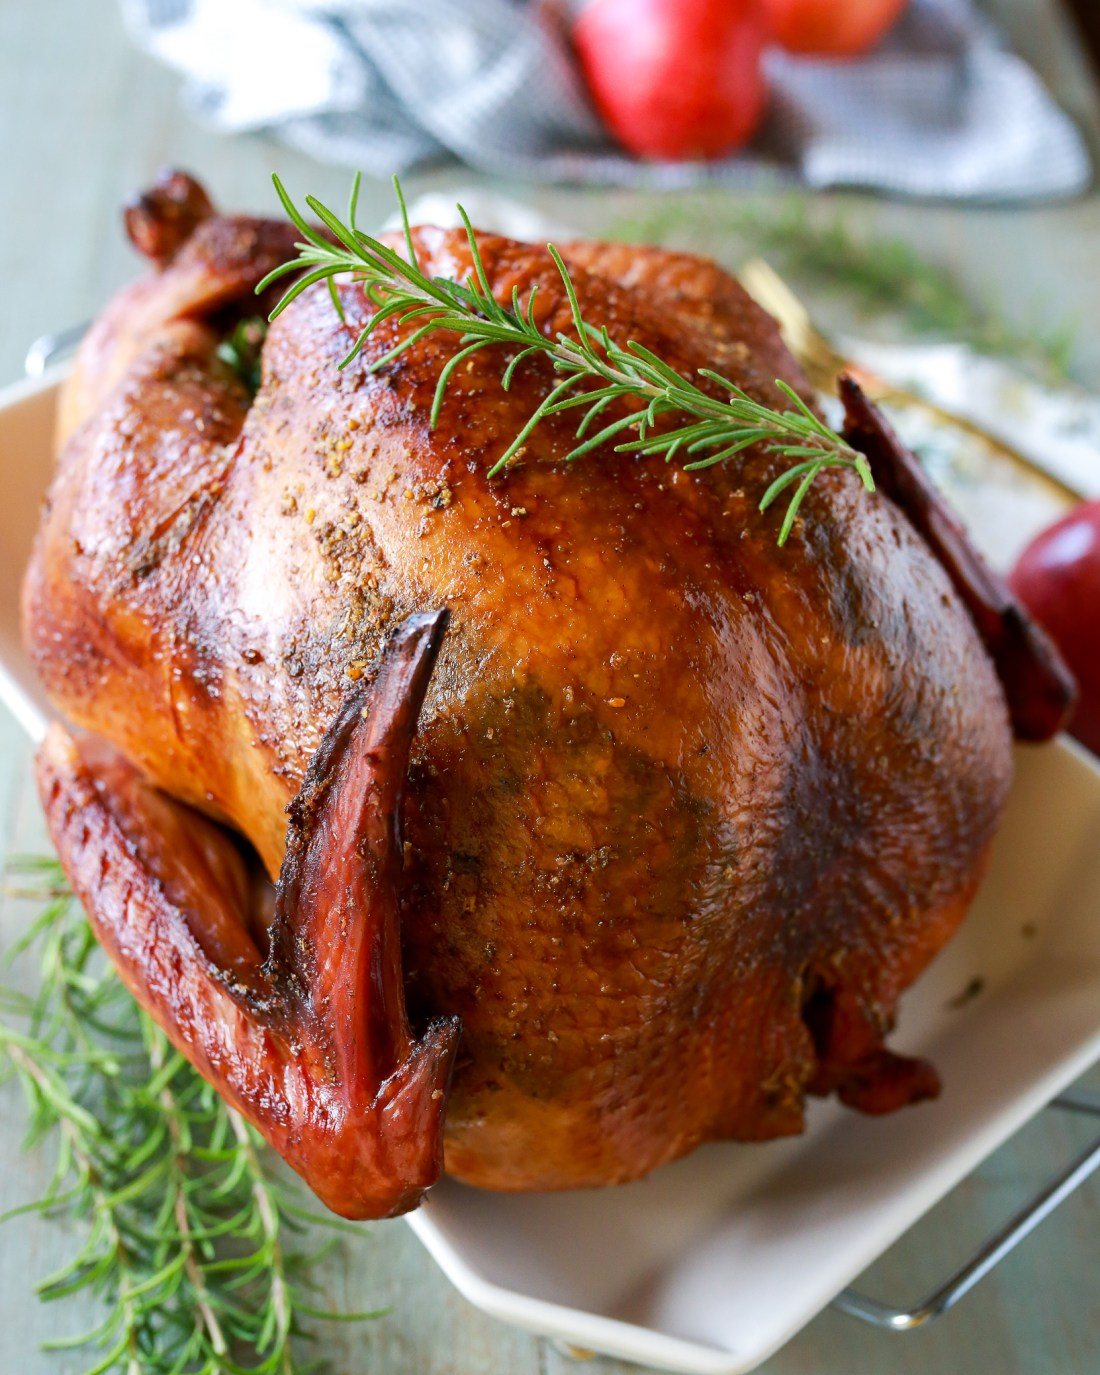 The perfect turkey recipe: smoked turkey loaded with flavor, with a crispy golden skin and moist perfectly seasoned meat, through and through.